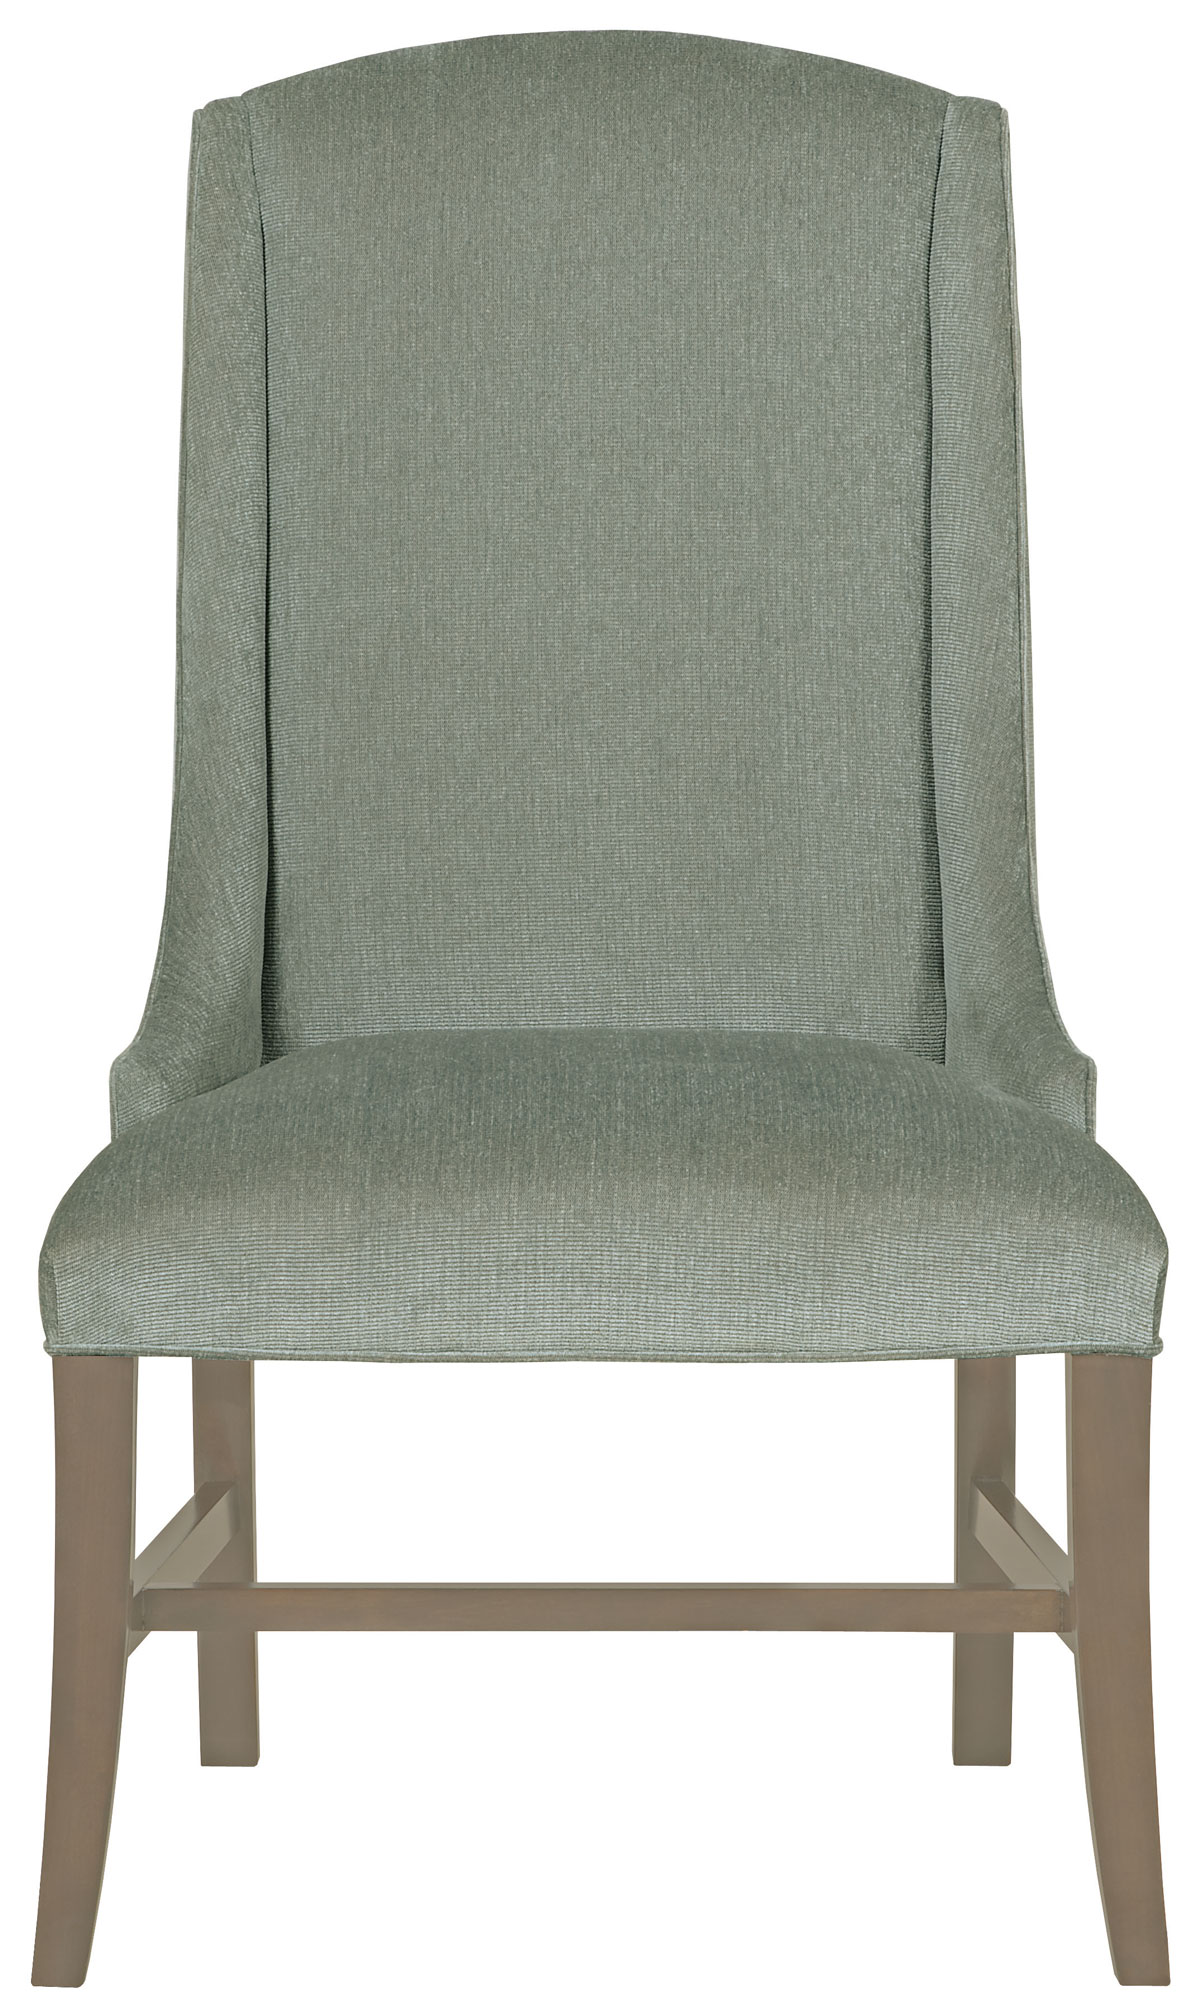 upholstered chair with nailhead trim gaming chairs for small rooms arm | bernhardt